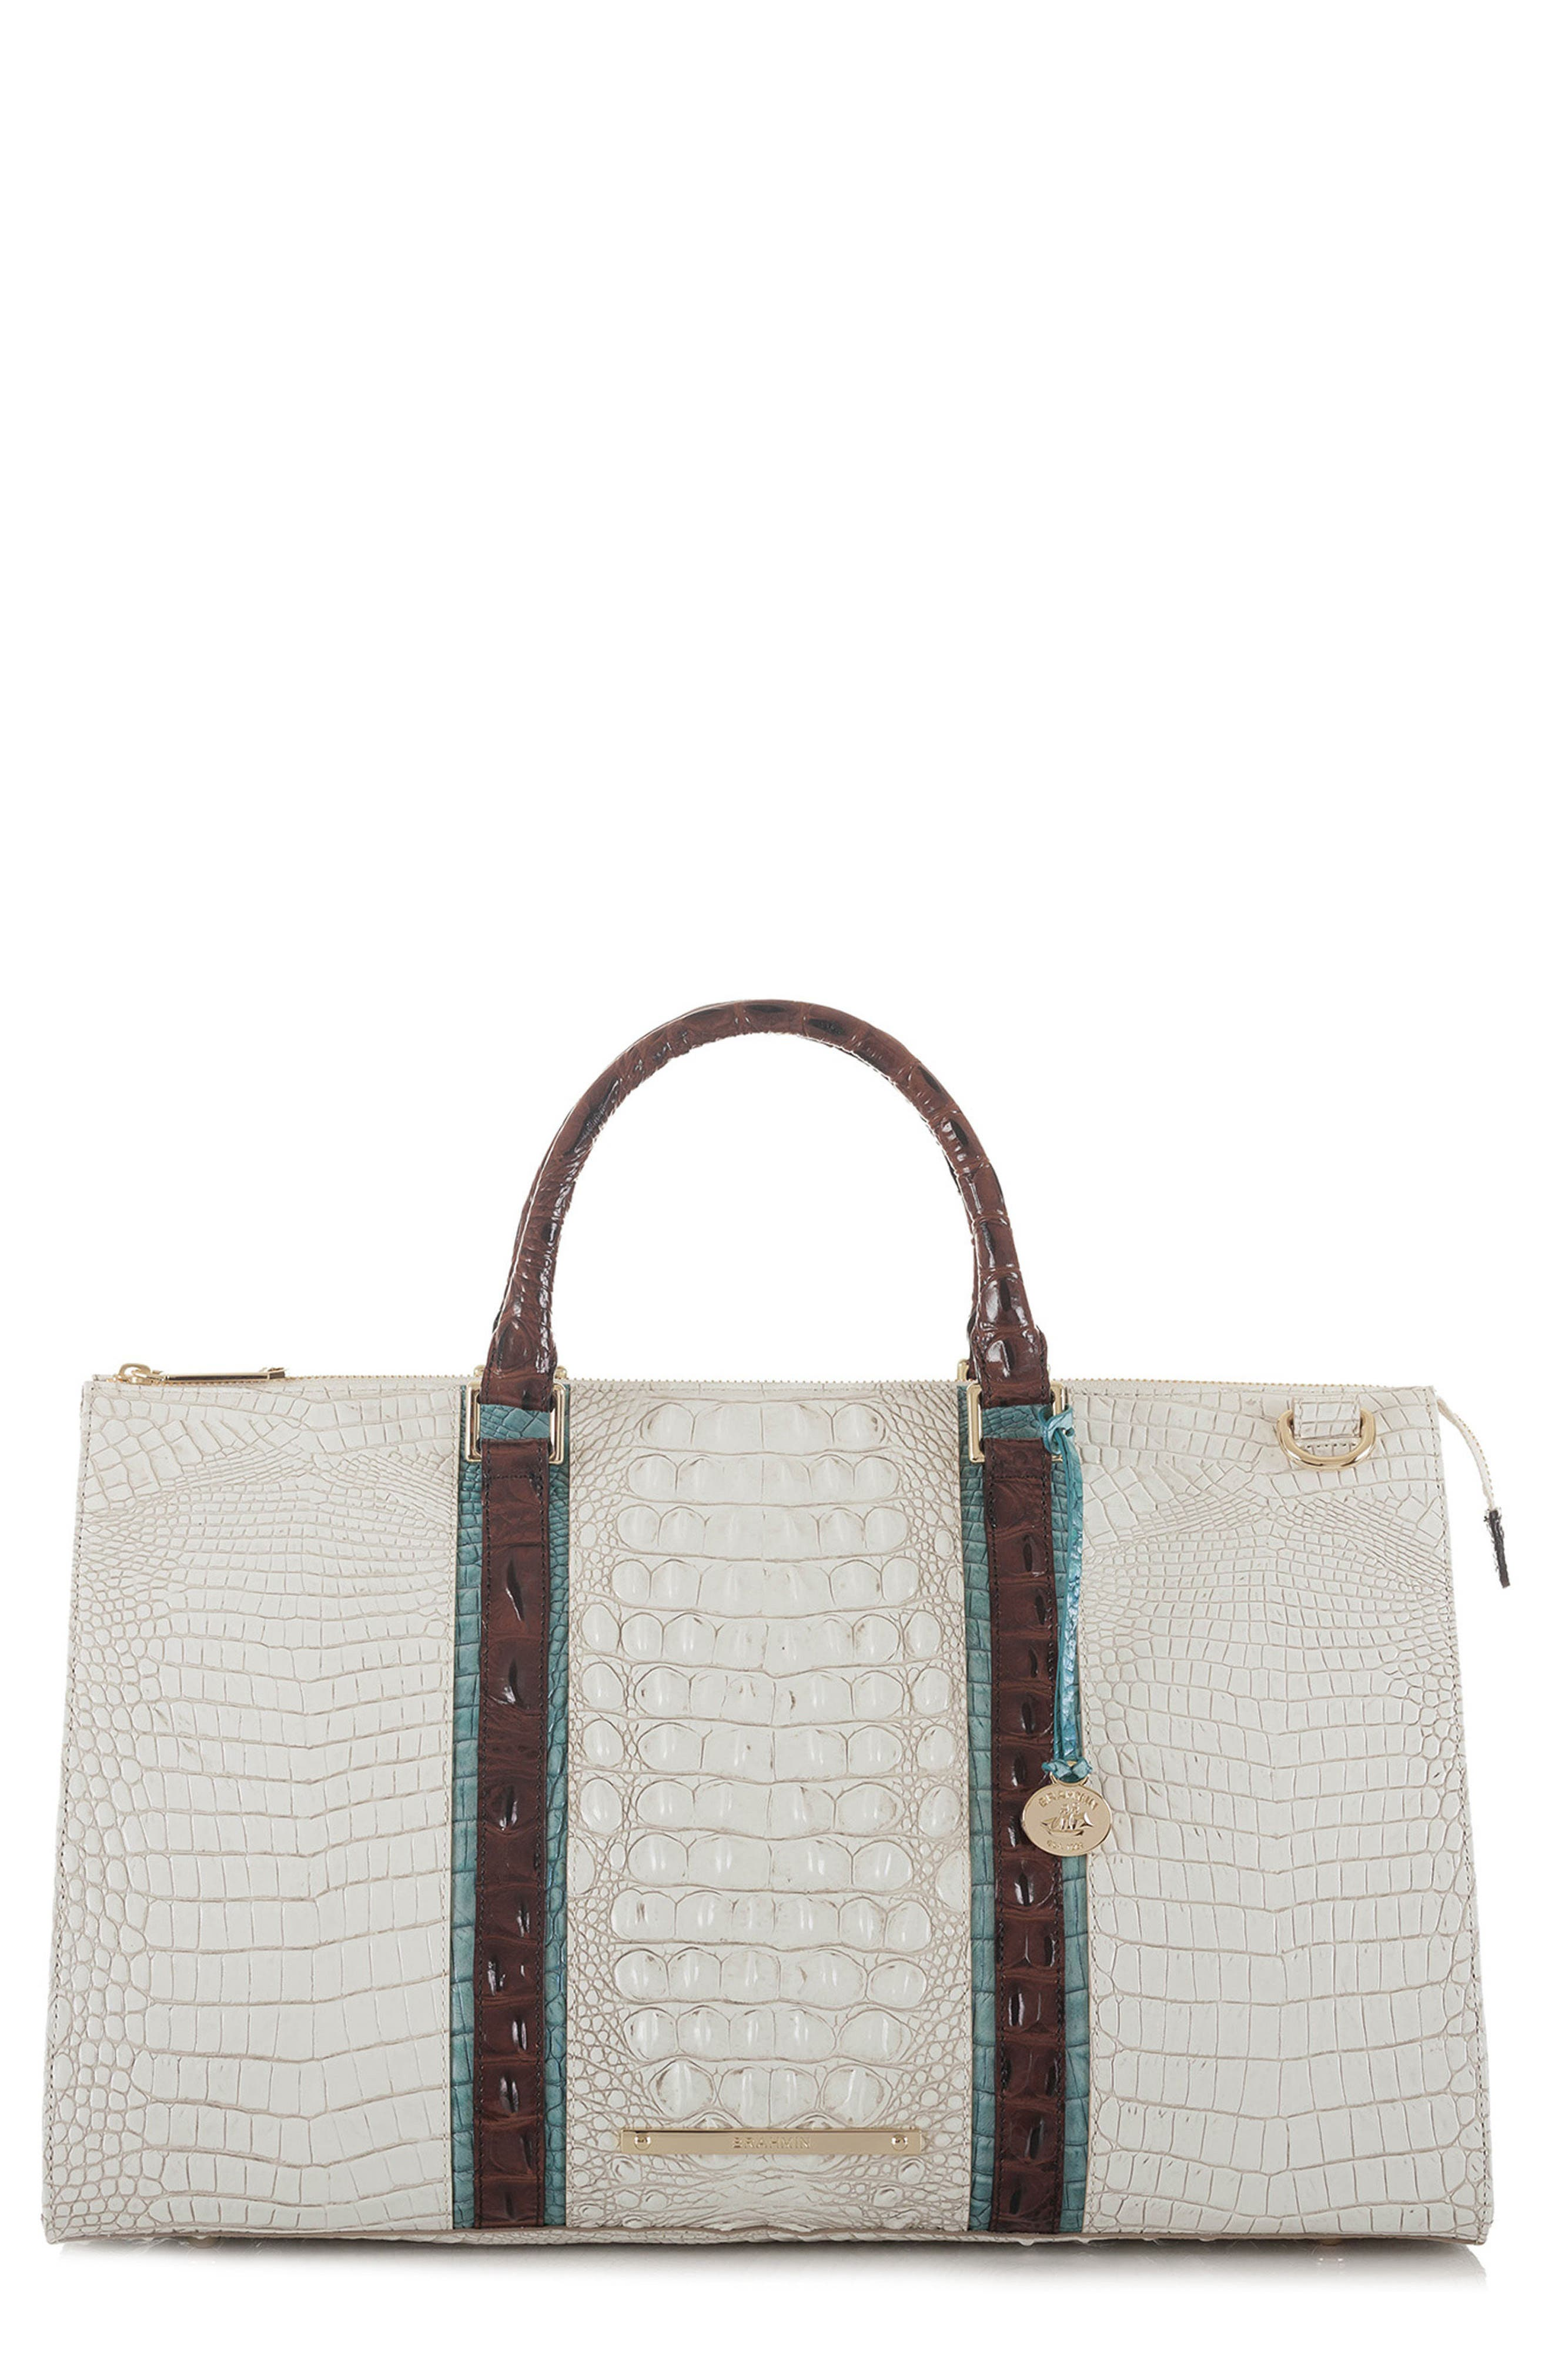 Anywhere Weekend Leather Bag,                             Main thumbnail 1, color,                             Coconut